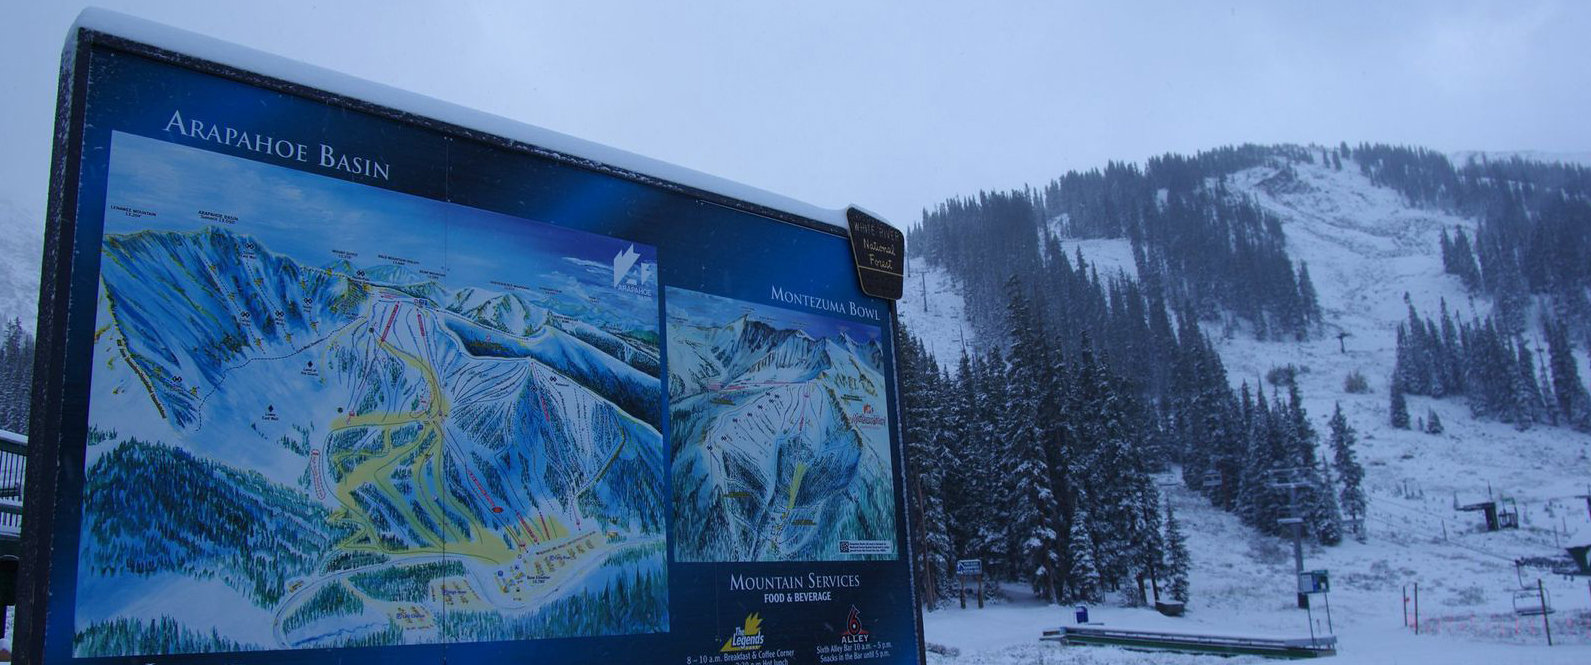 Snow in September! - ©Arapahoe Basin Ski Area